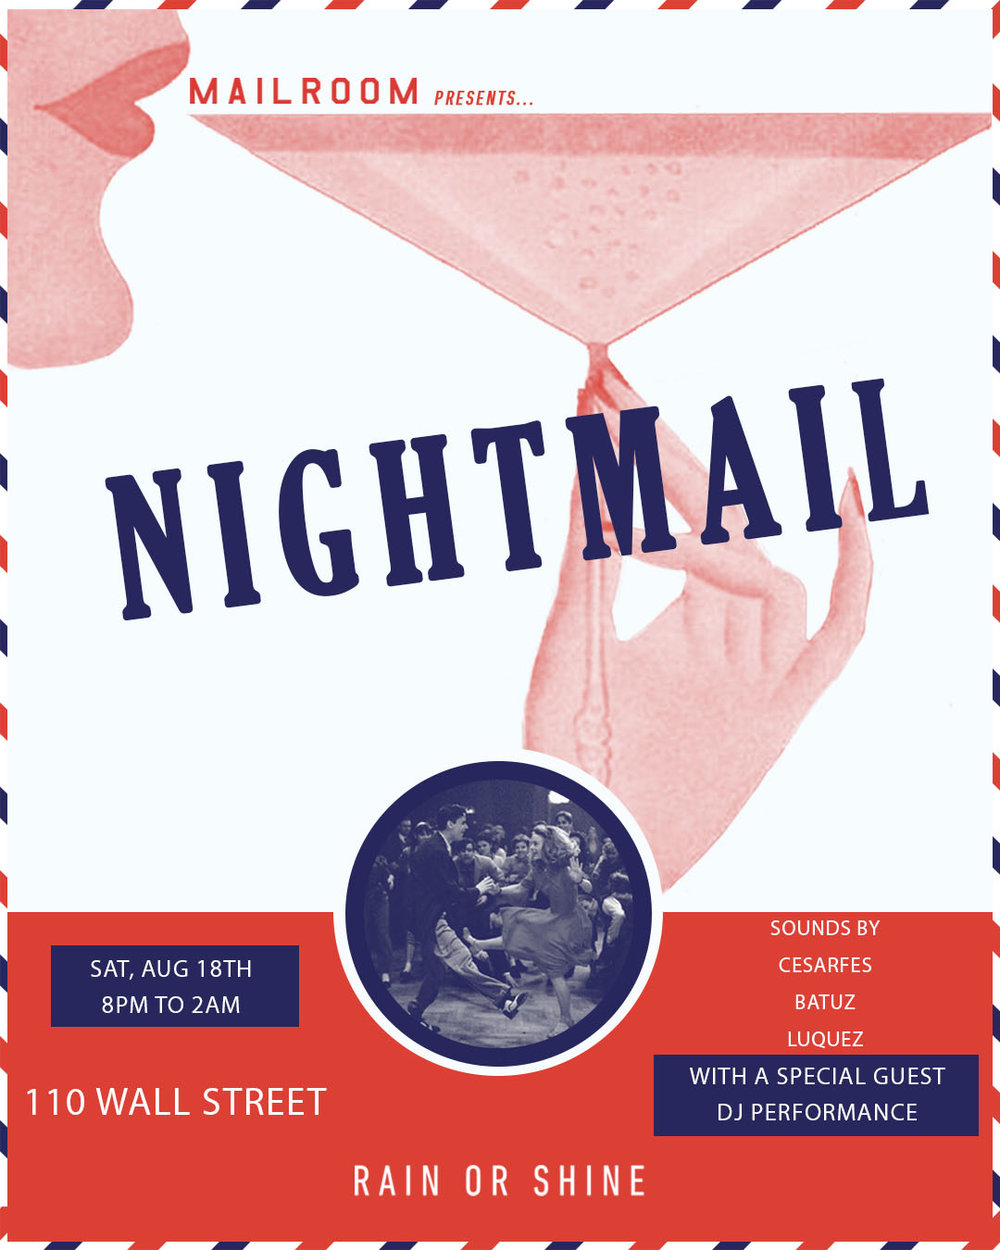 Nightmail - Saturday, August 18th, 2018, 8 PM - 2 AM, Free EntrySounds by Cesarfes, Batuz, & Luquez with a Special Guest DJ Performance